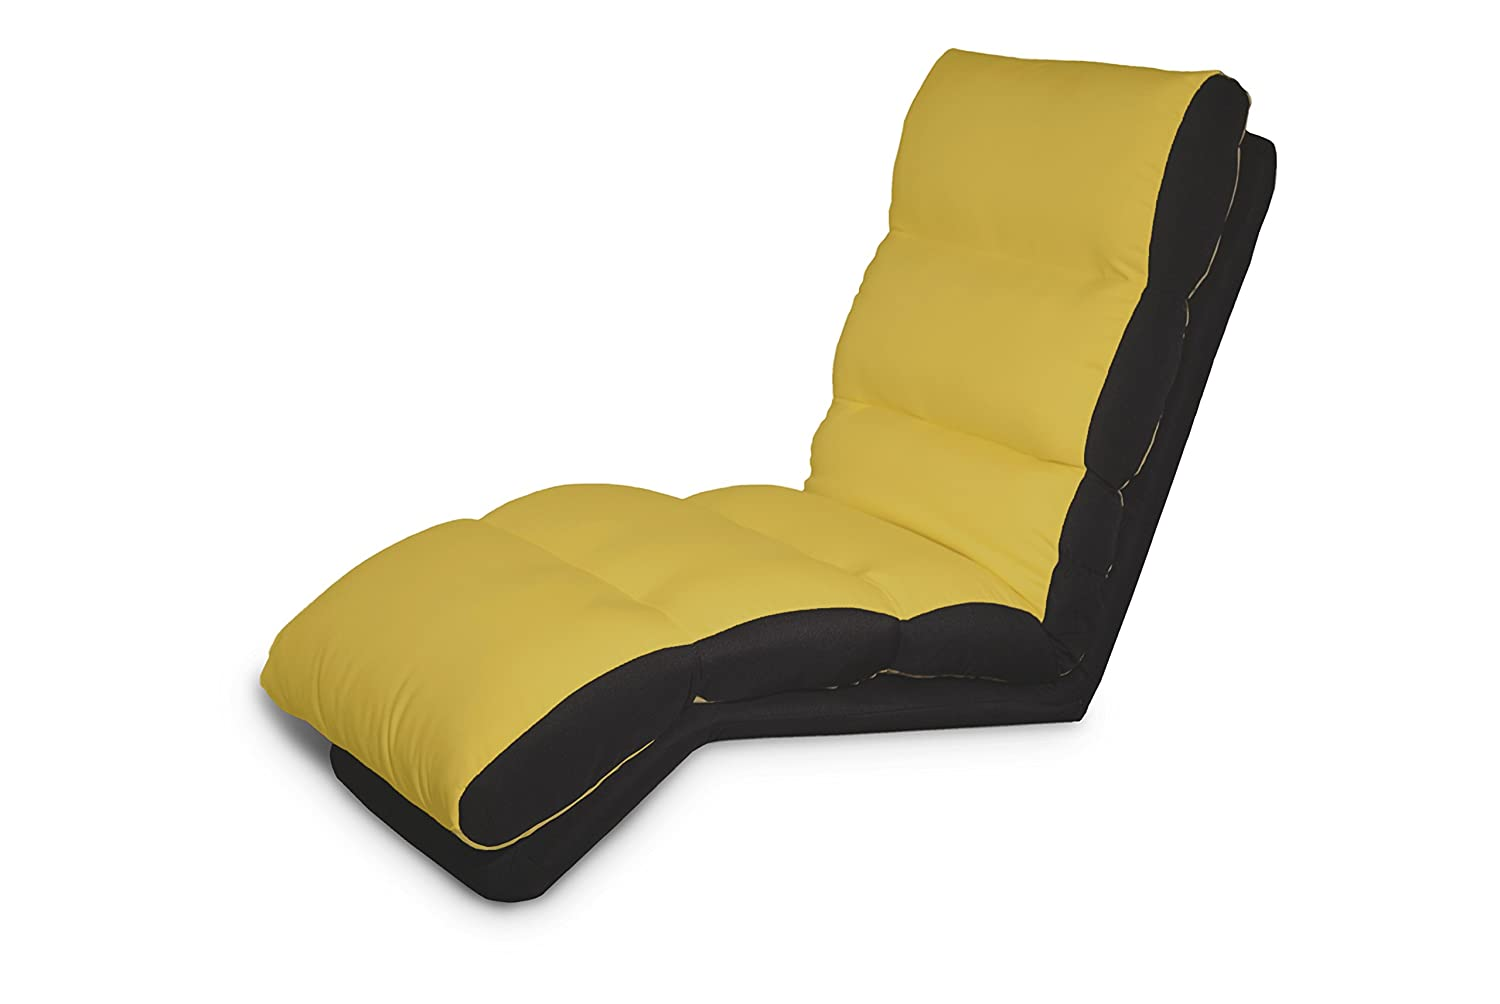 Amazon.com: Lifestyle Solutions Turbo Teen Lounger, Yellow: Kitchen & Dining